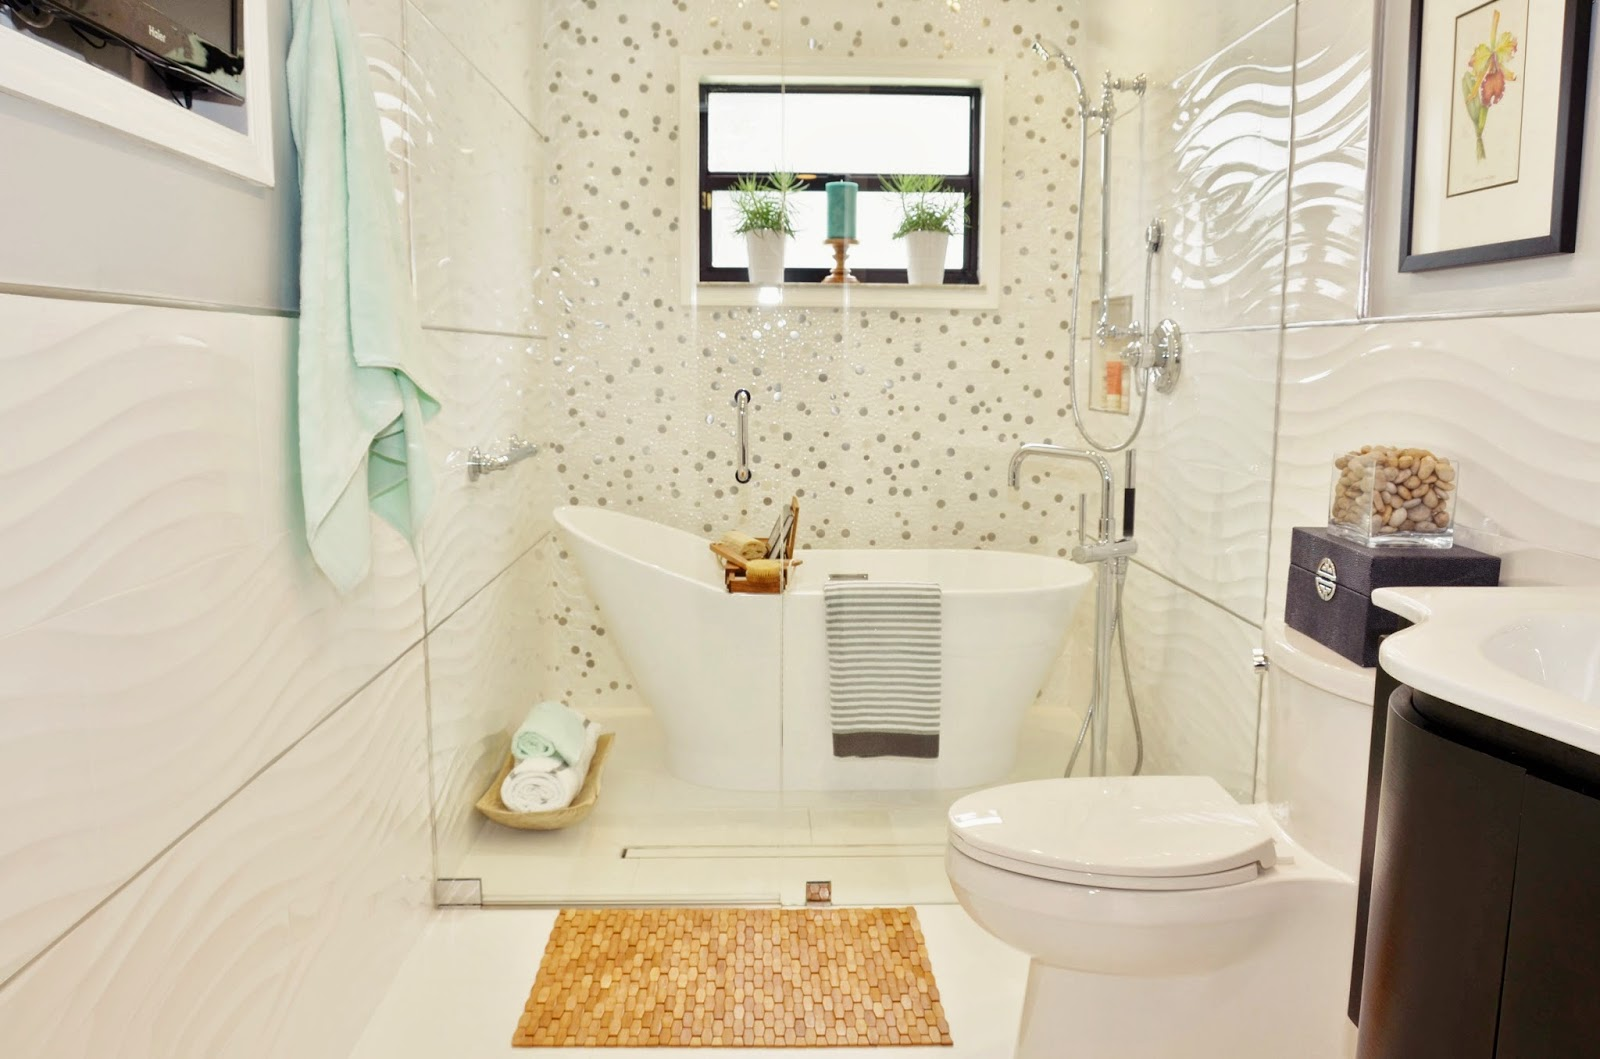 Live Laugh Decorate: A Vintage Tub + Modern Shower = A Swanky New ...